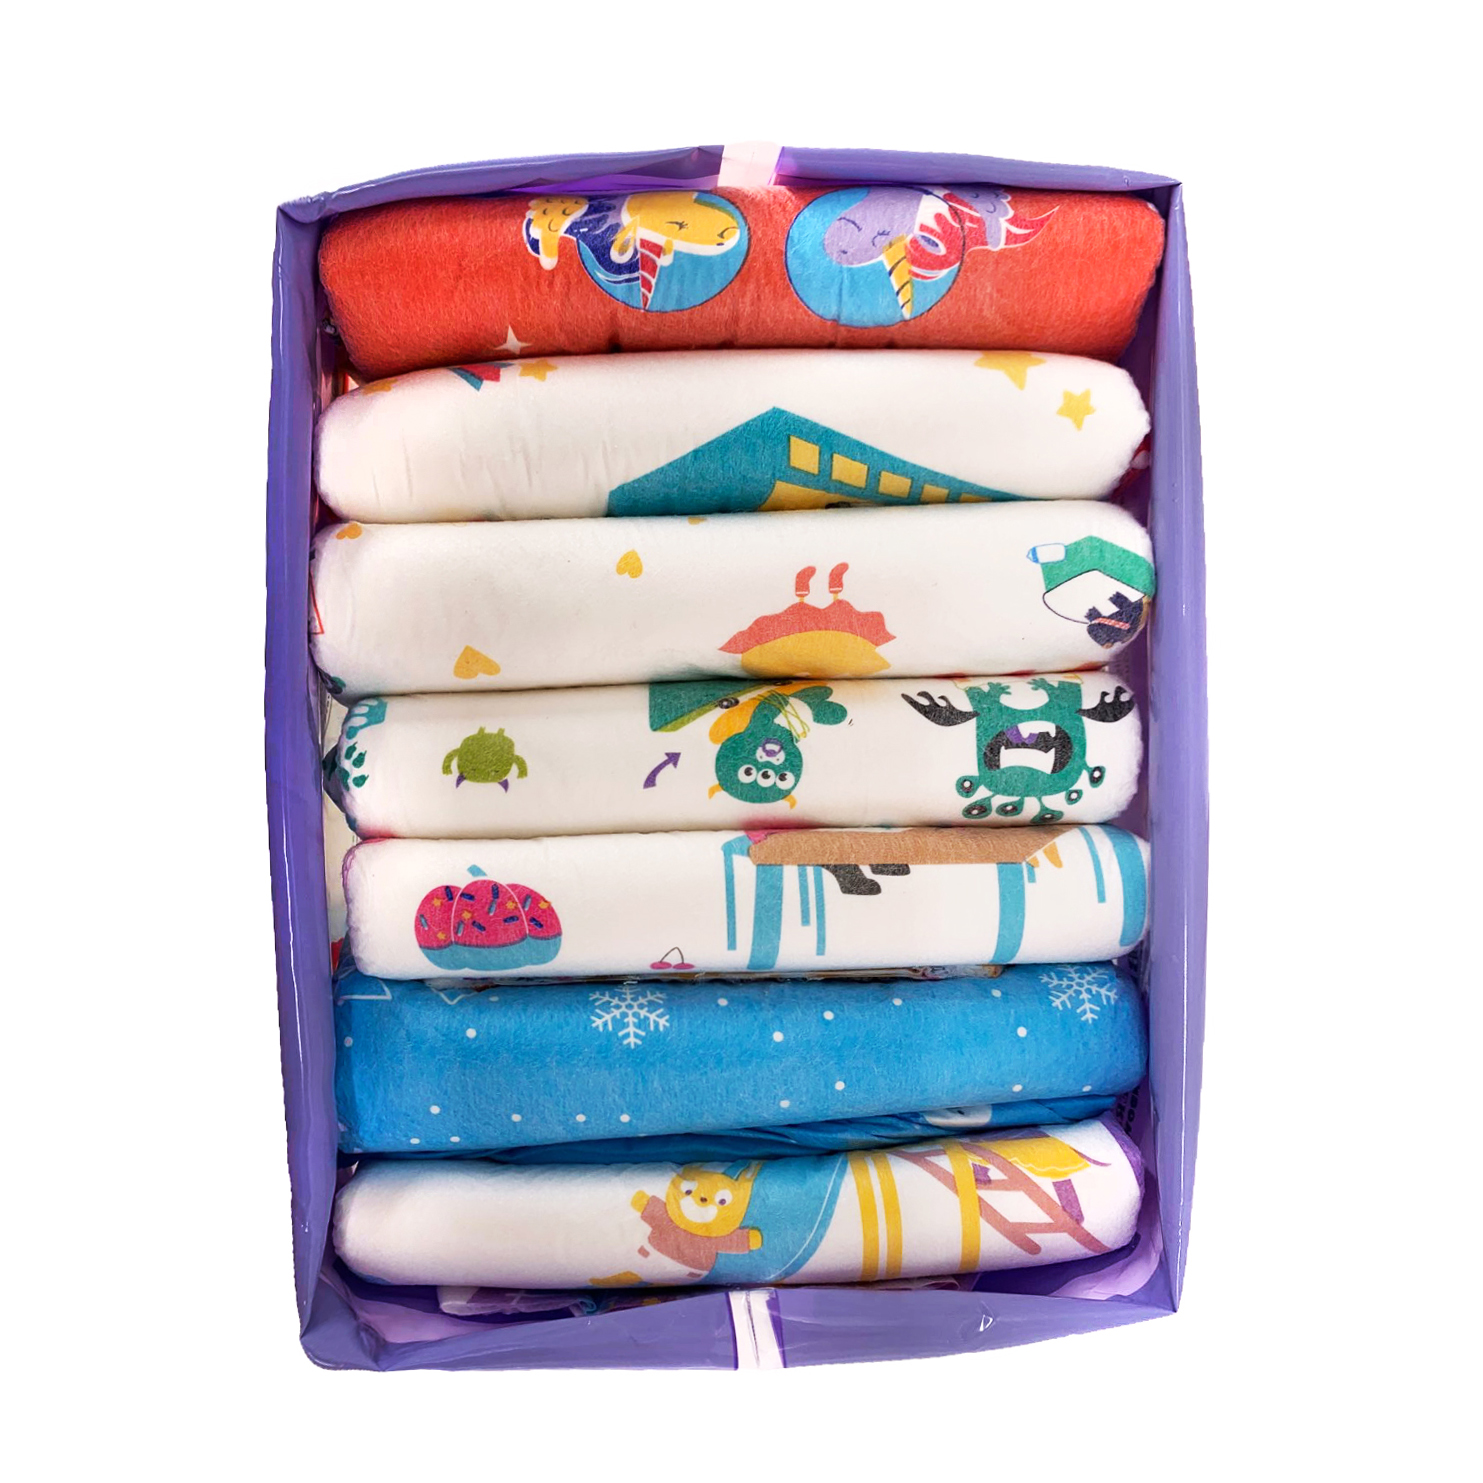 TEN@NIGHT Rainbow Week Diaper ABDL Extra Large Size Christmas Diaper Stretchy Waist DDLG Diaper Dummy Different 7pcs In A Pack